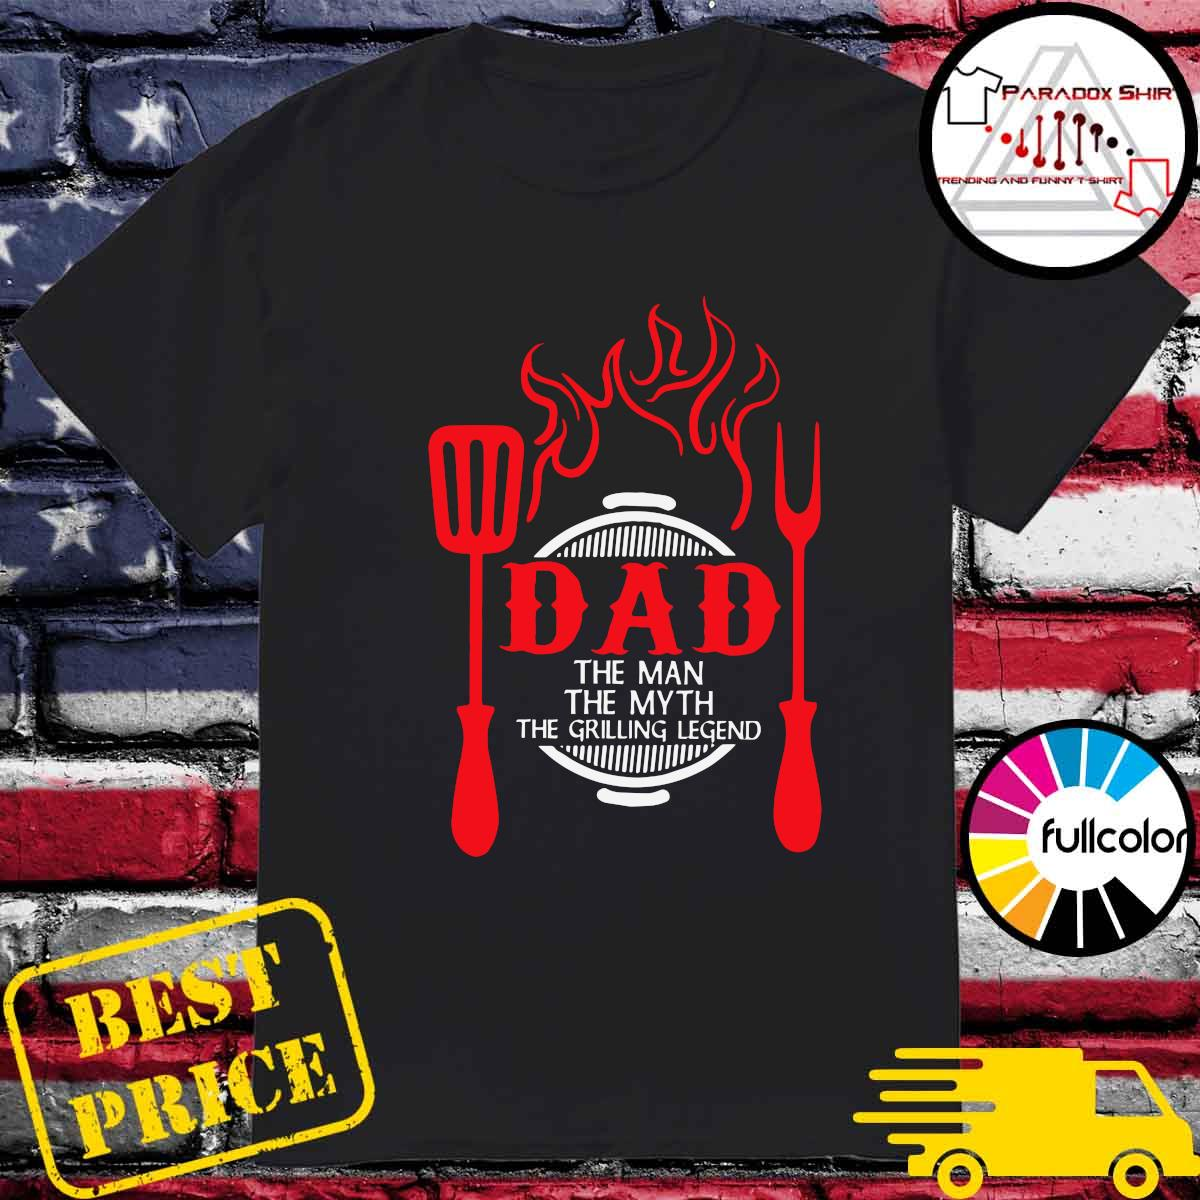 Dad The Me The Myth The Grilling Legend Shirt